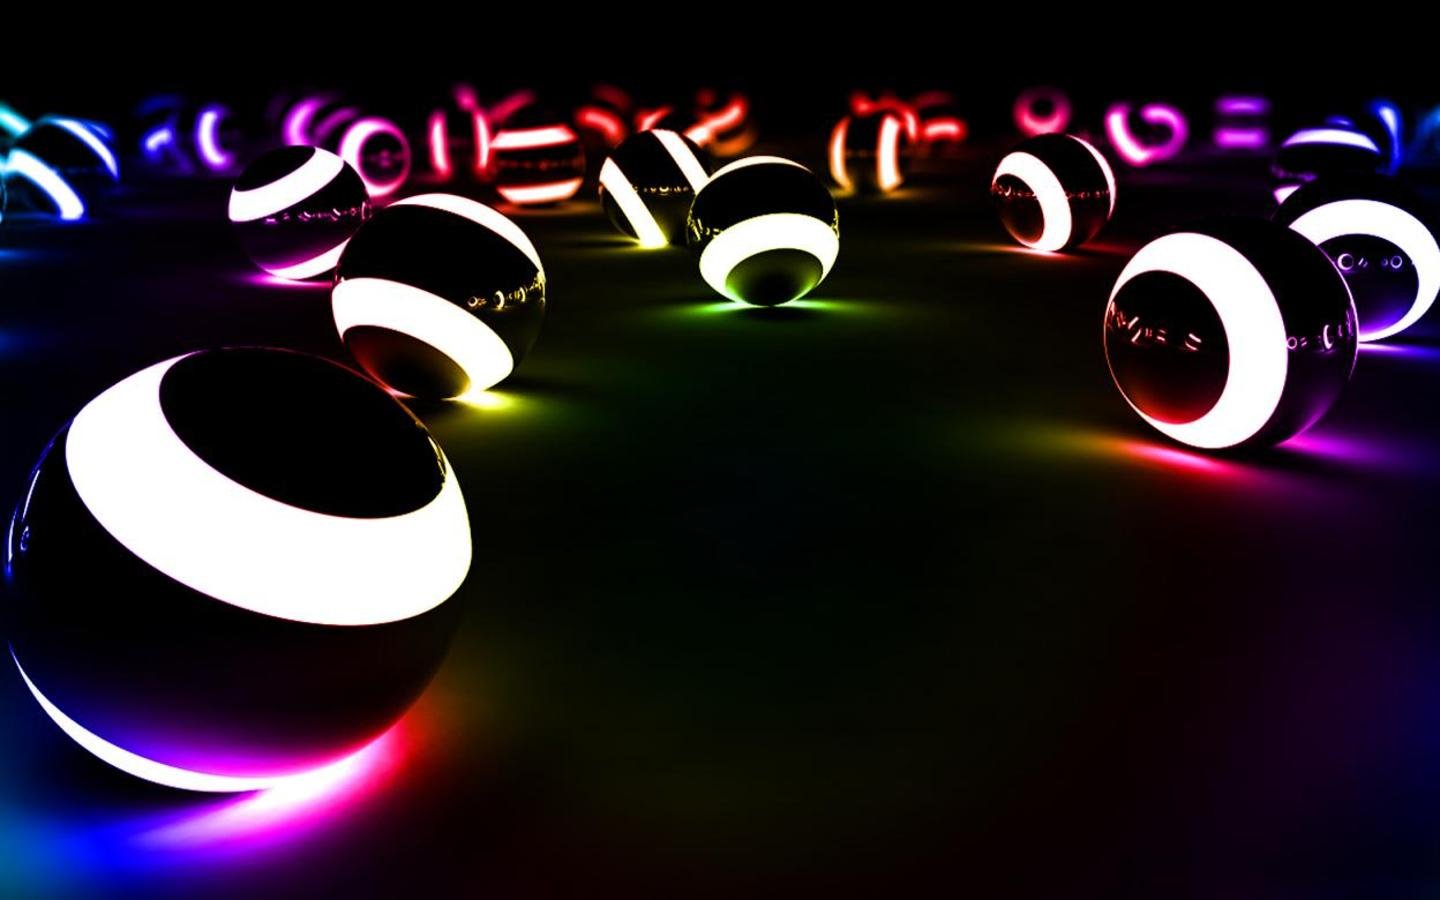 Let Your Desktop Glow with Neon Light Wallpapers 1440x900